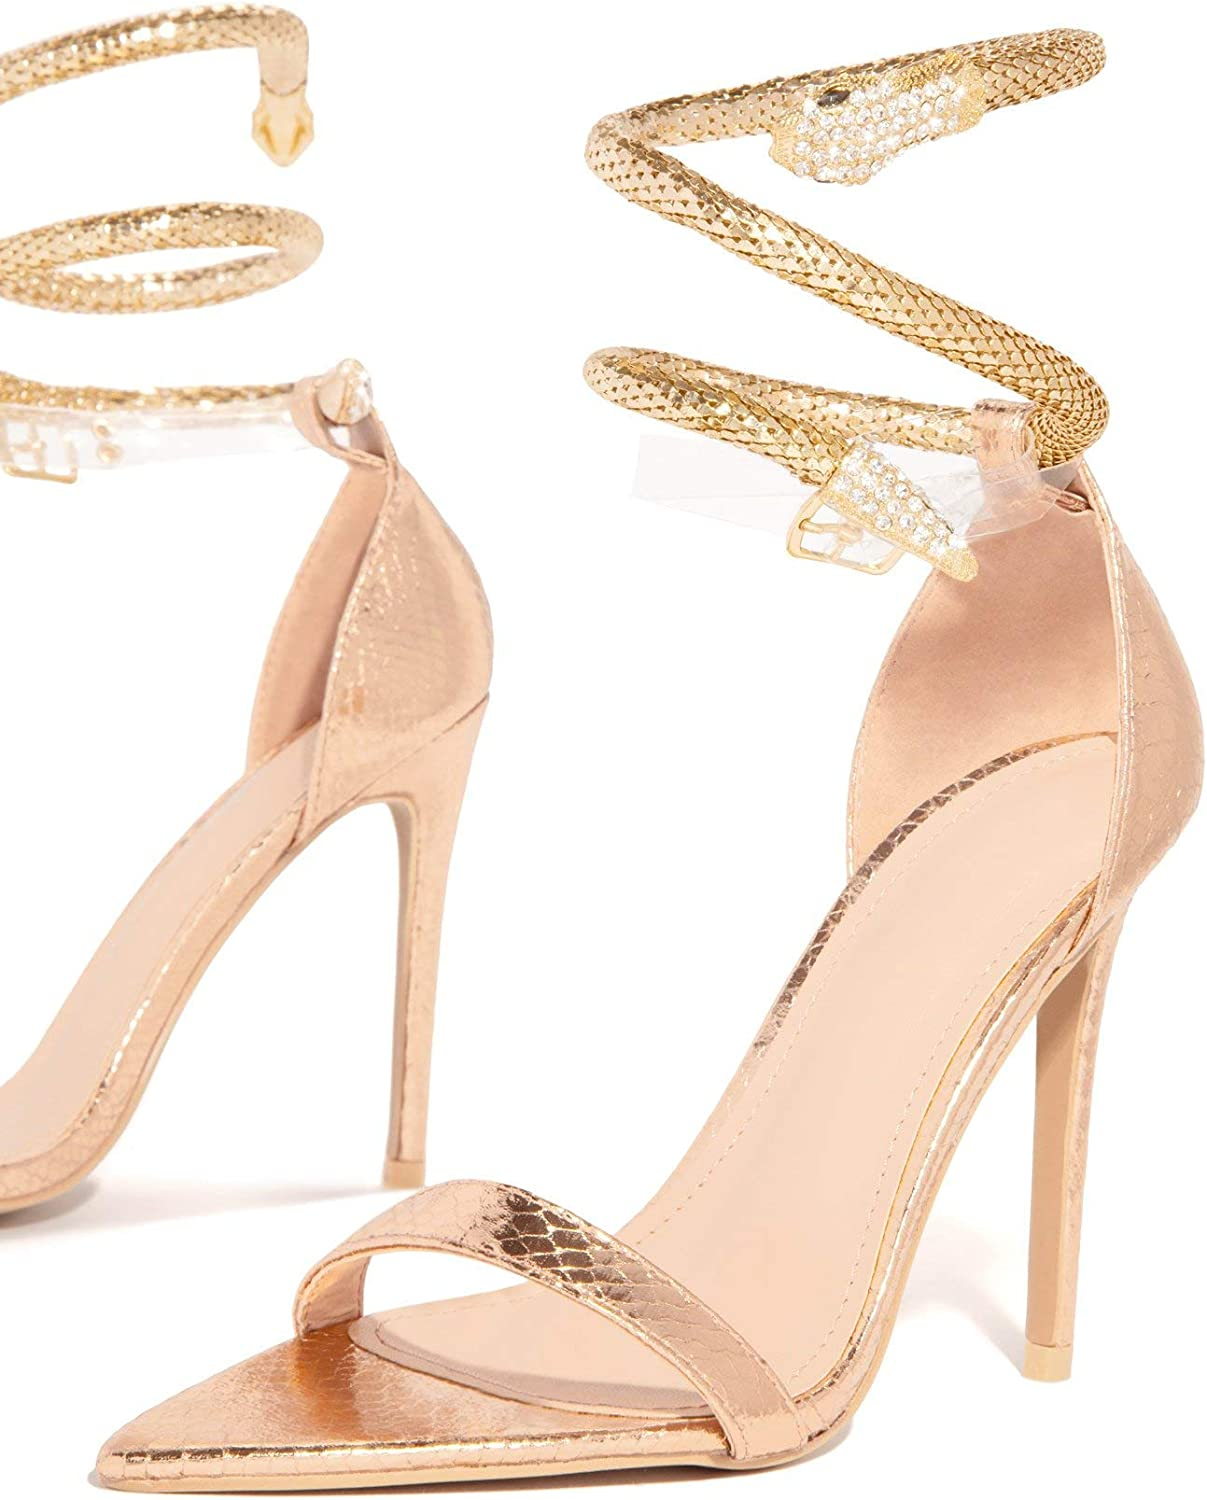 Shoes With Gold Heels